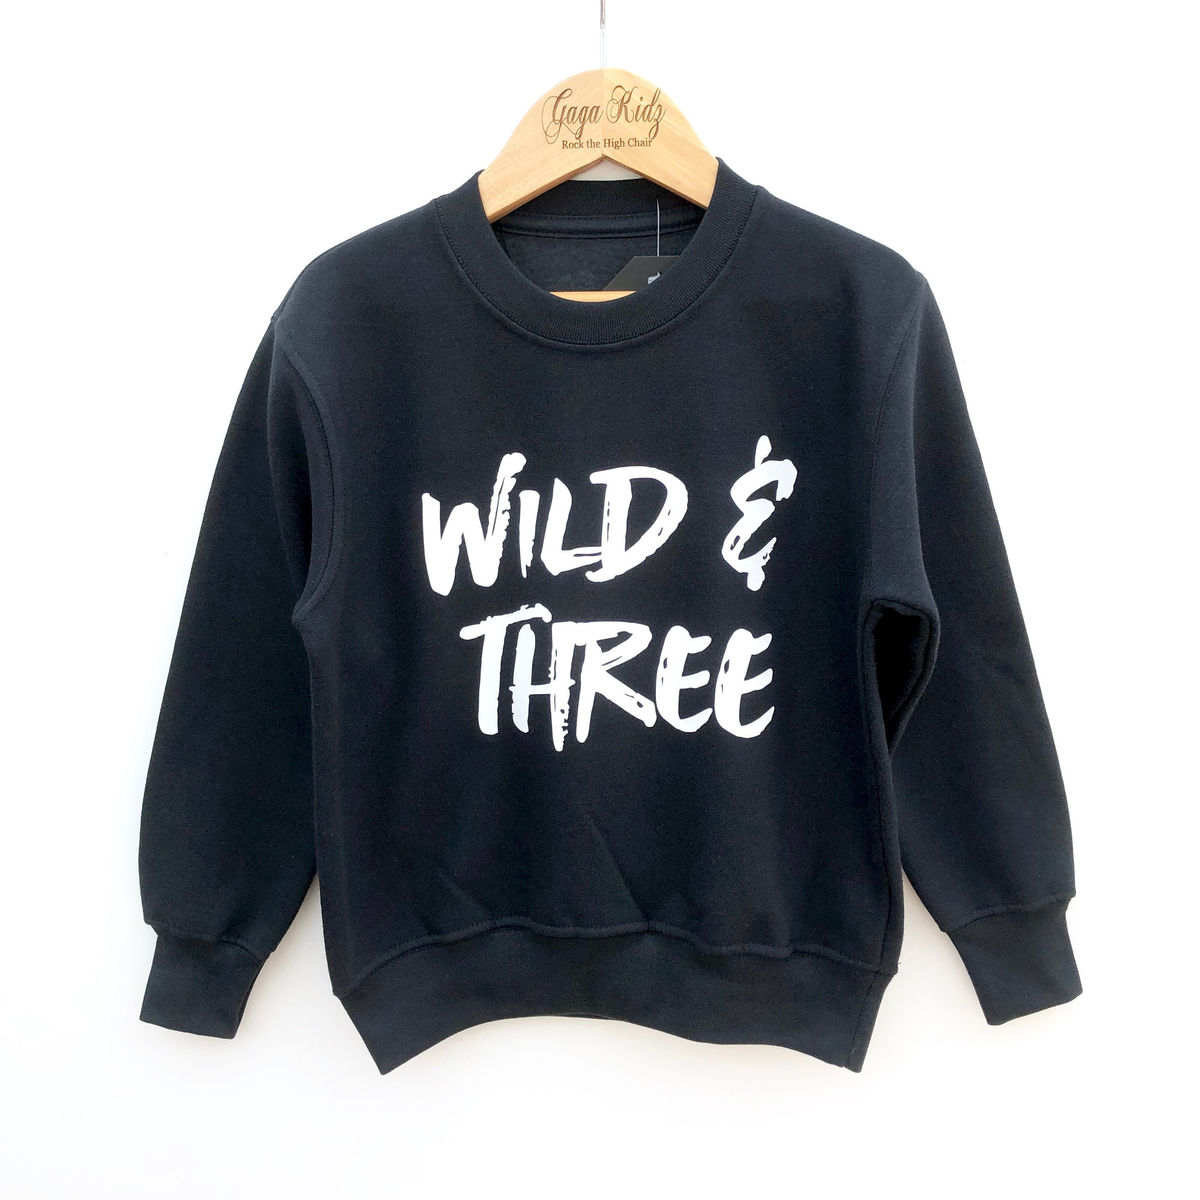 Wild & Three Sweatshirt - product images  of